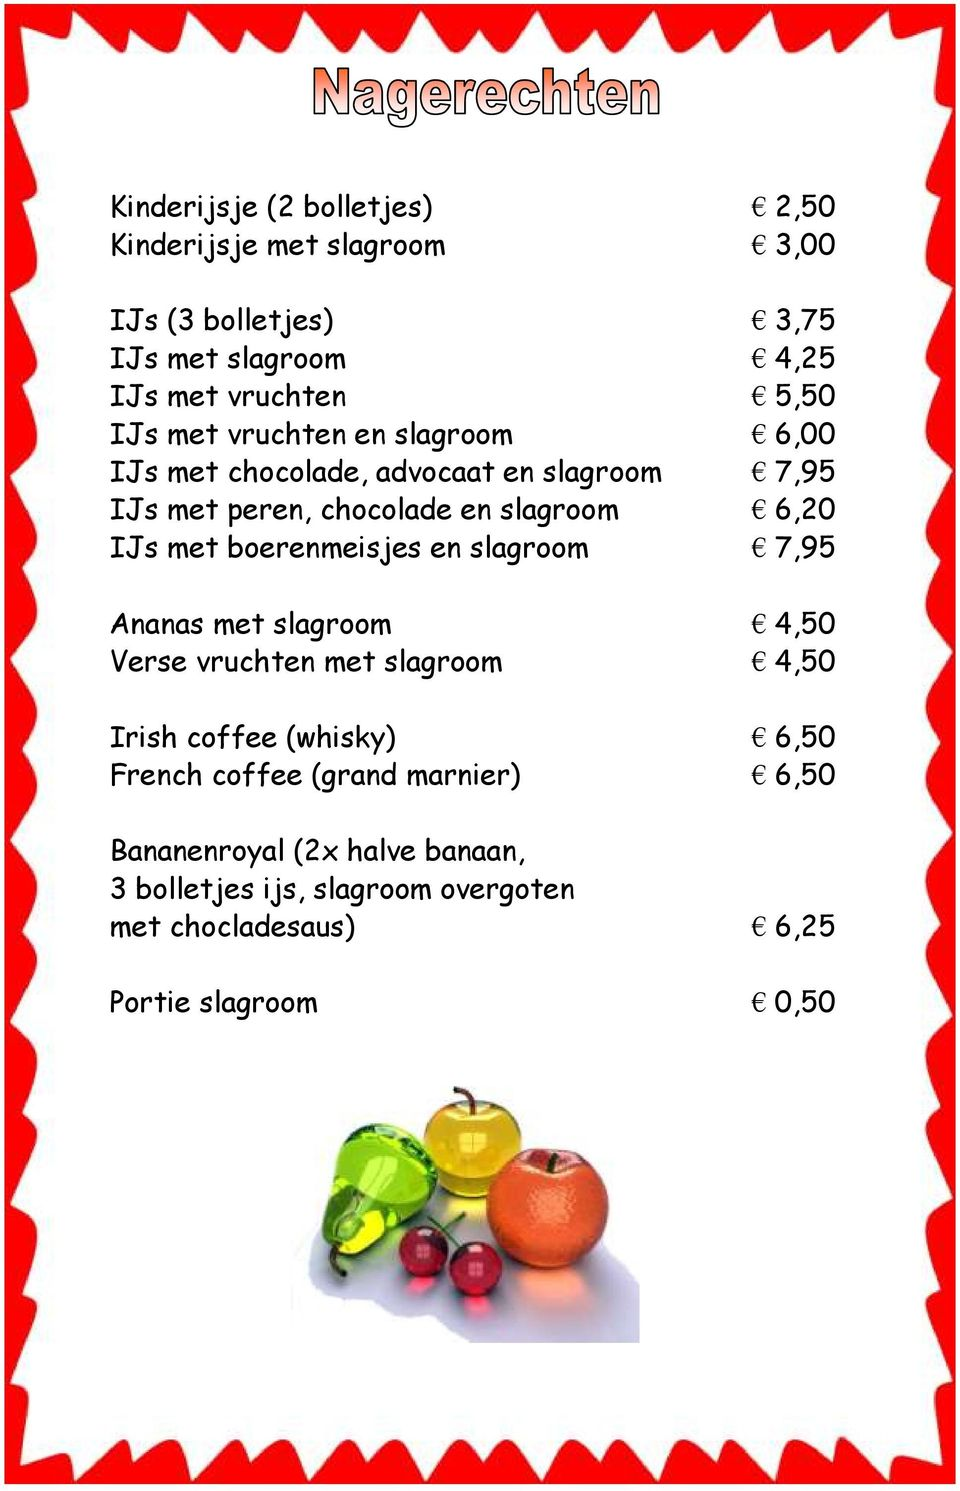 boerenmeisjes en slagroom 7,95 Ananas met slagroom 4,50 Verse vruchten met slagroom 4,50 Irish coffee (whisky) 6,50 French coffee